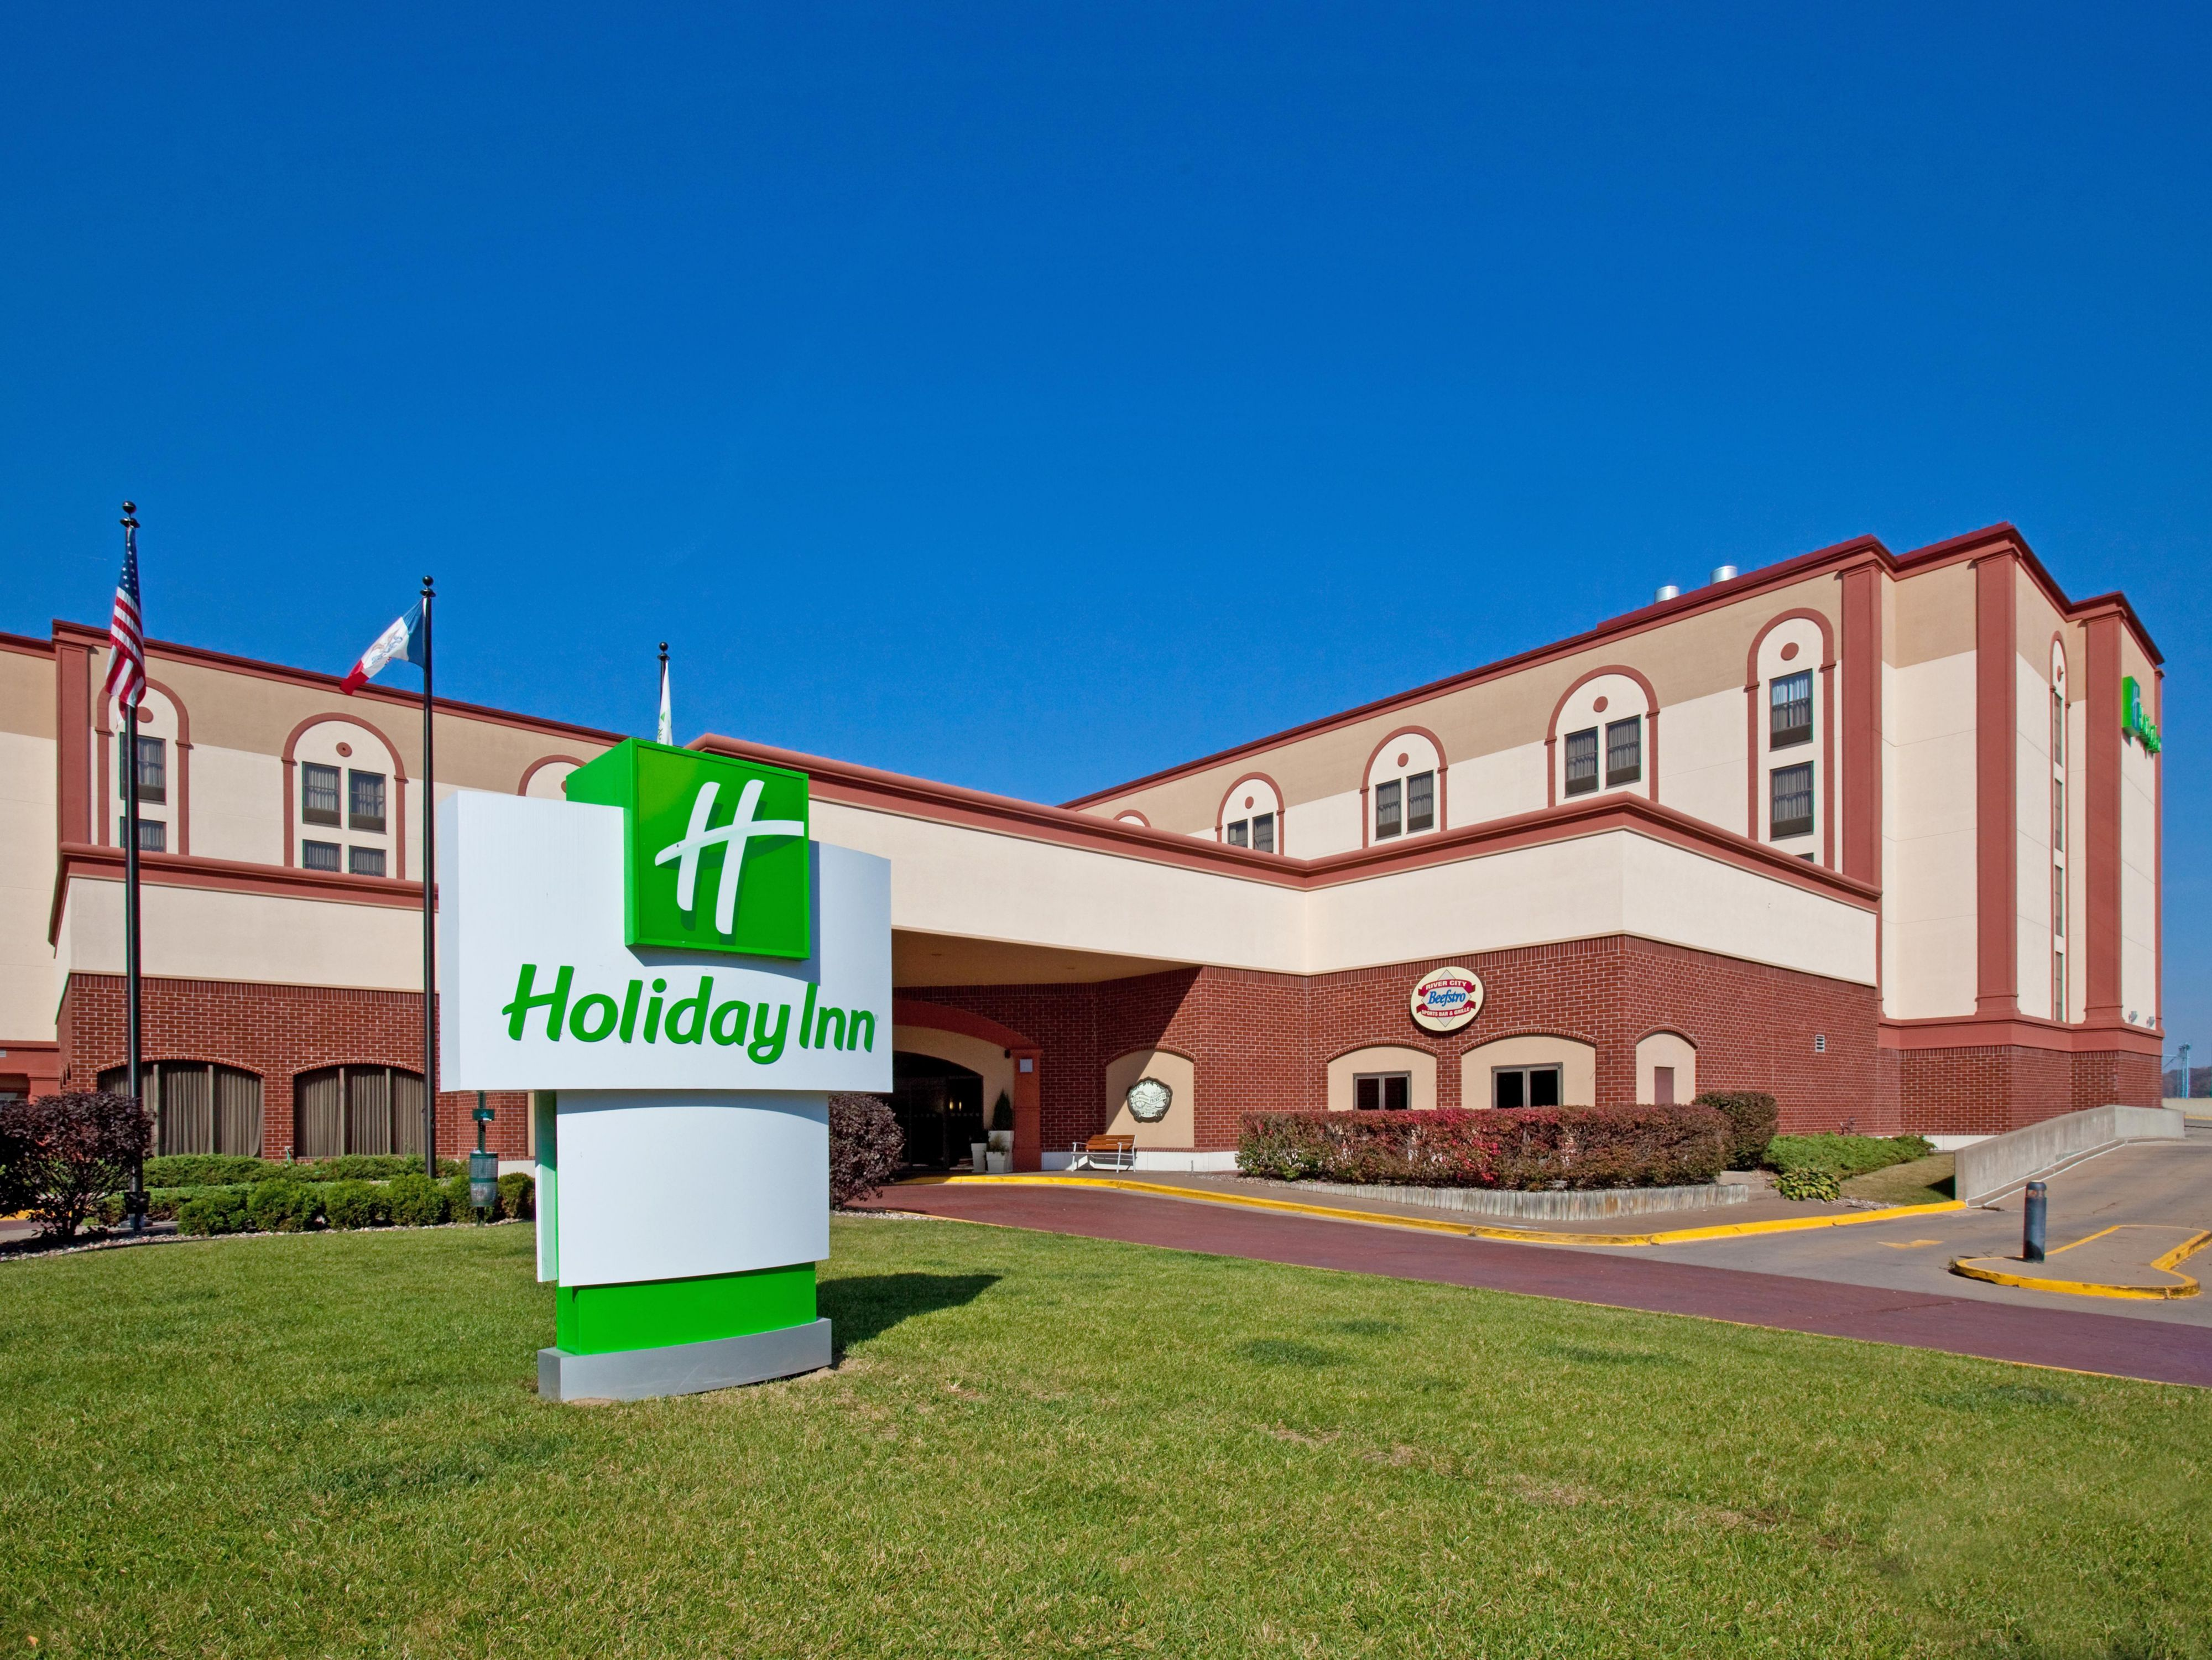 Holiday Inn Dubuque welcoming Main Street entrance